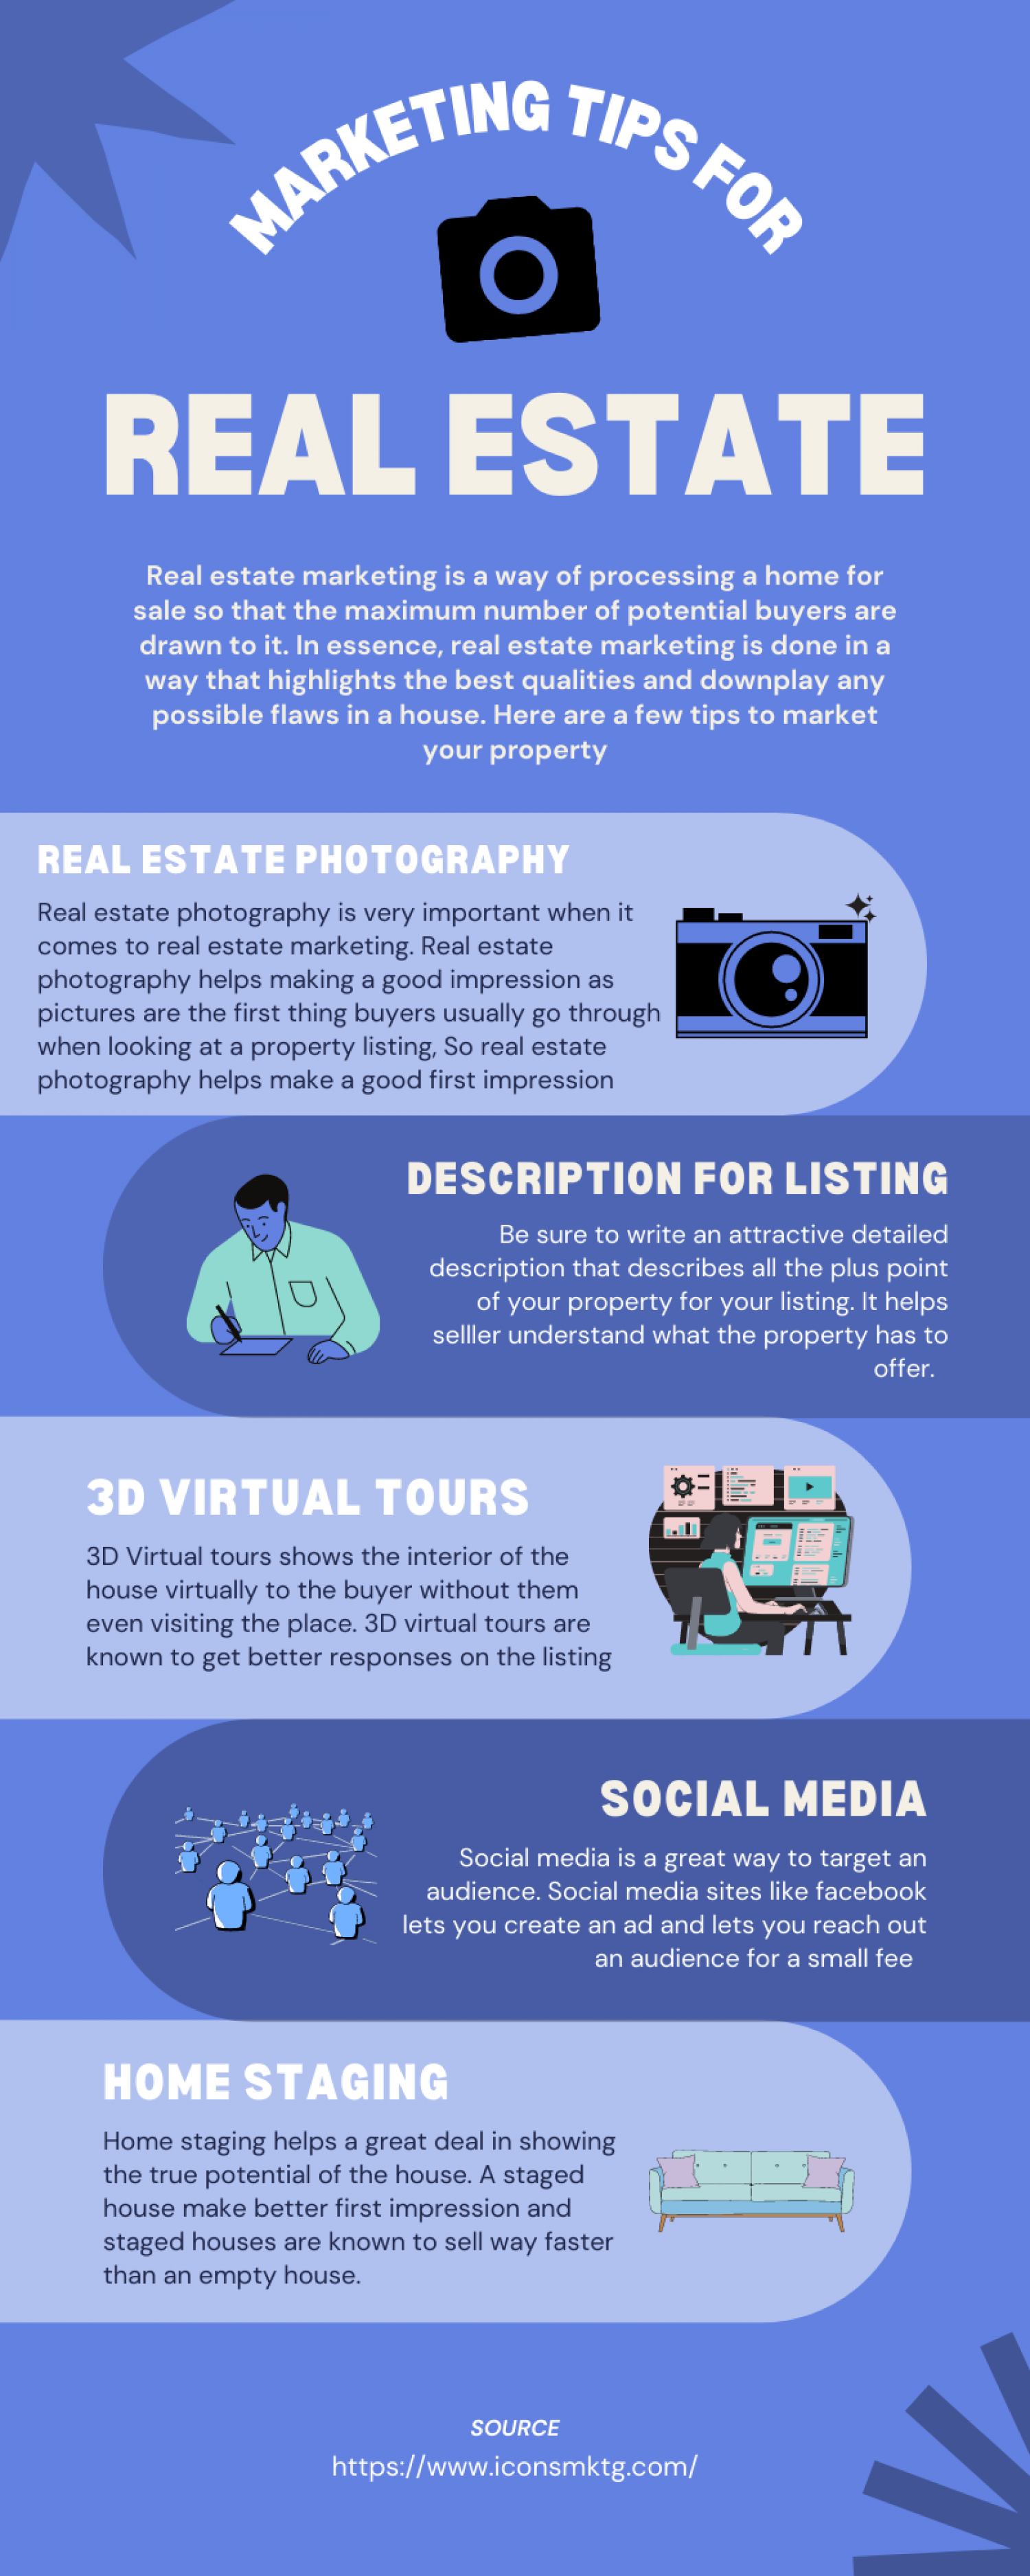 Marketing tips for real estate Infographic